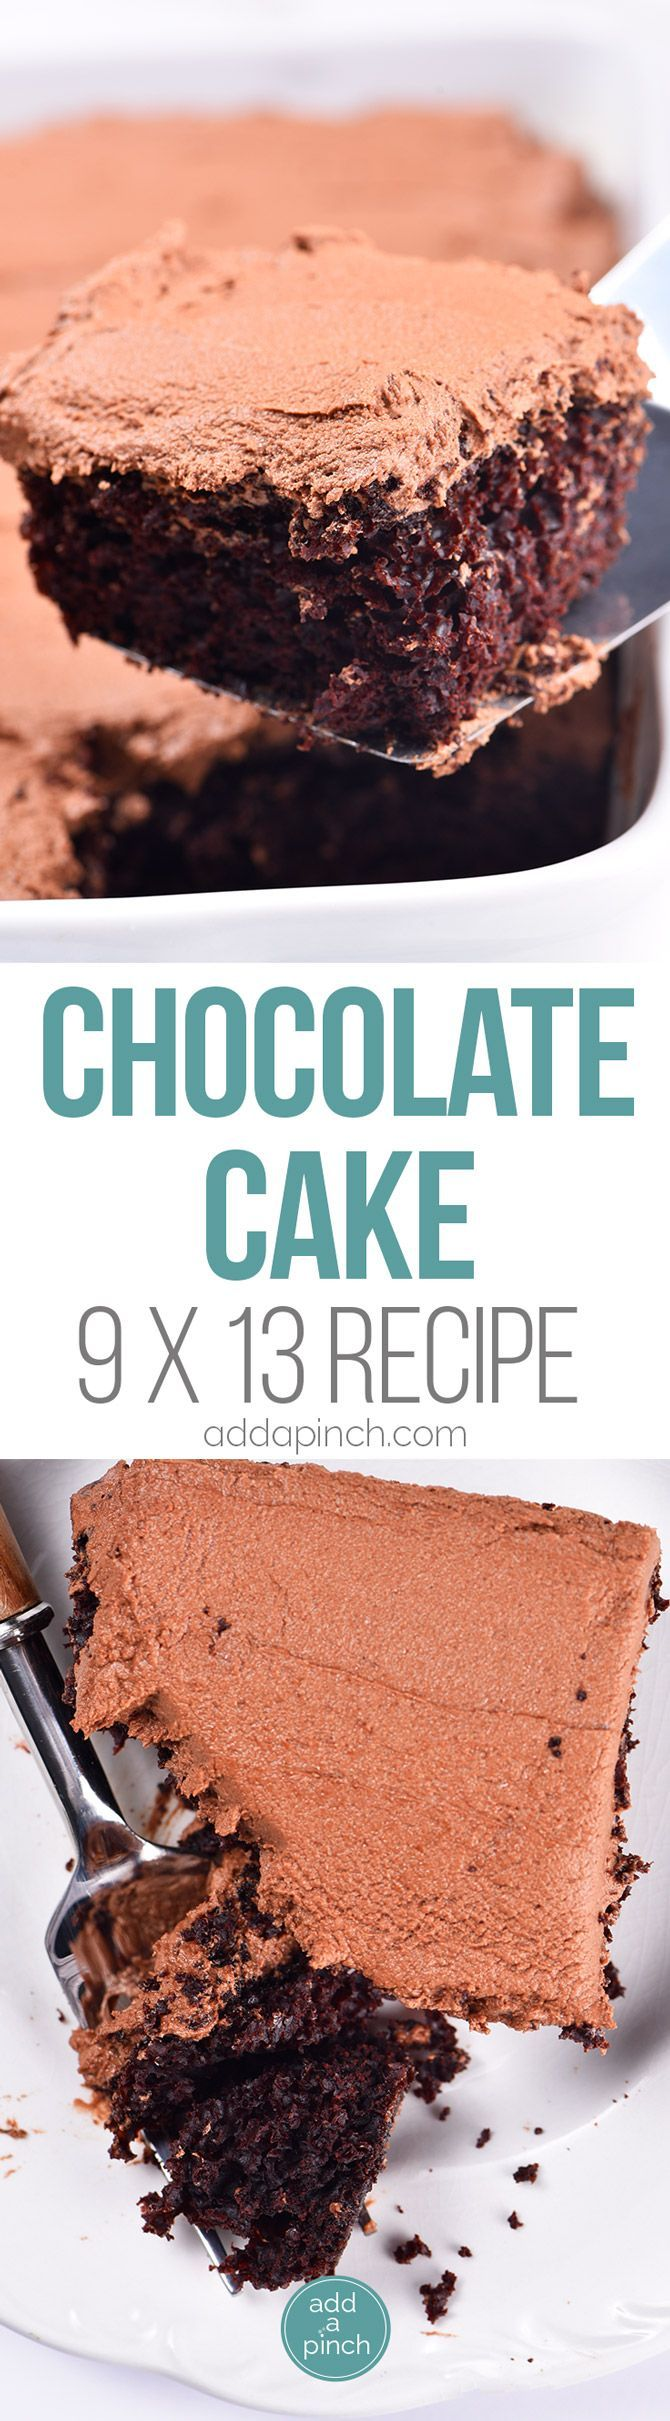 Best Chocolate Cake Recipe (9x13 Recipe) - This is the easiest 9x13 chocolate cake recipe I've ever made. Adjusted from my Best Chocolate Cake that everyone absolutely loves, I've now made the cake even easier and sized for a 9x13 sheet cake! // addapinch.com